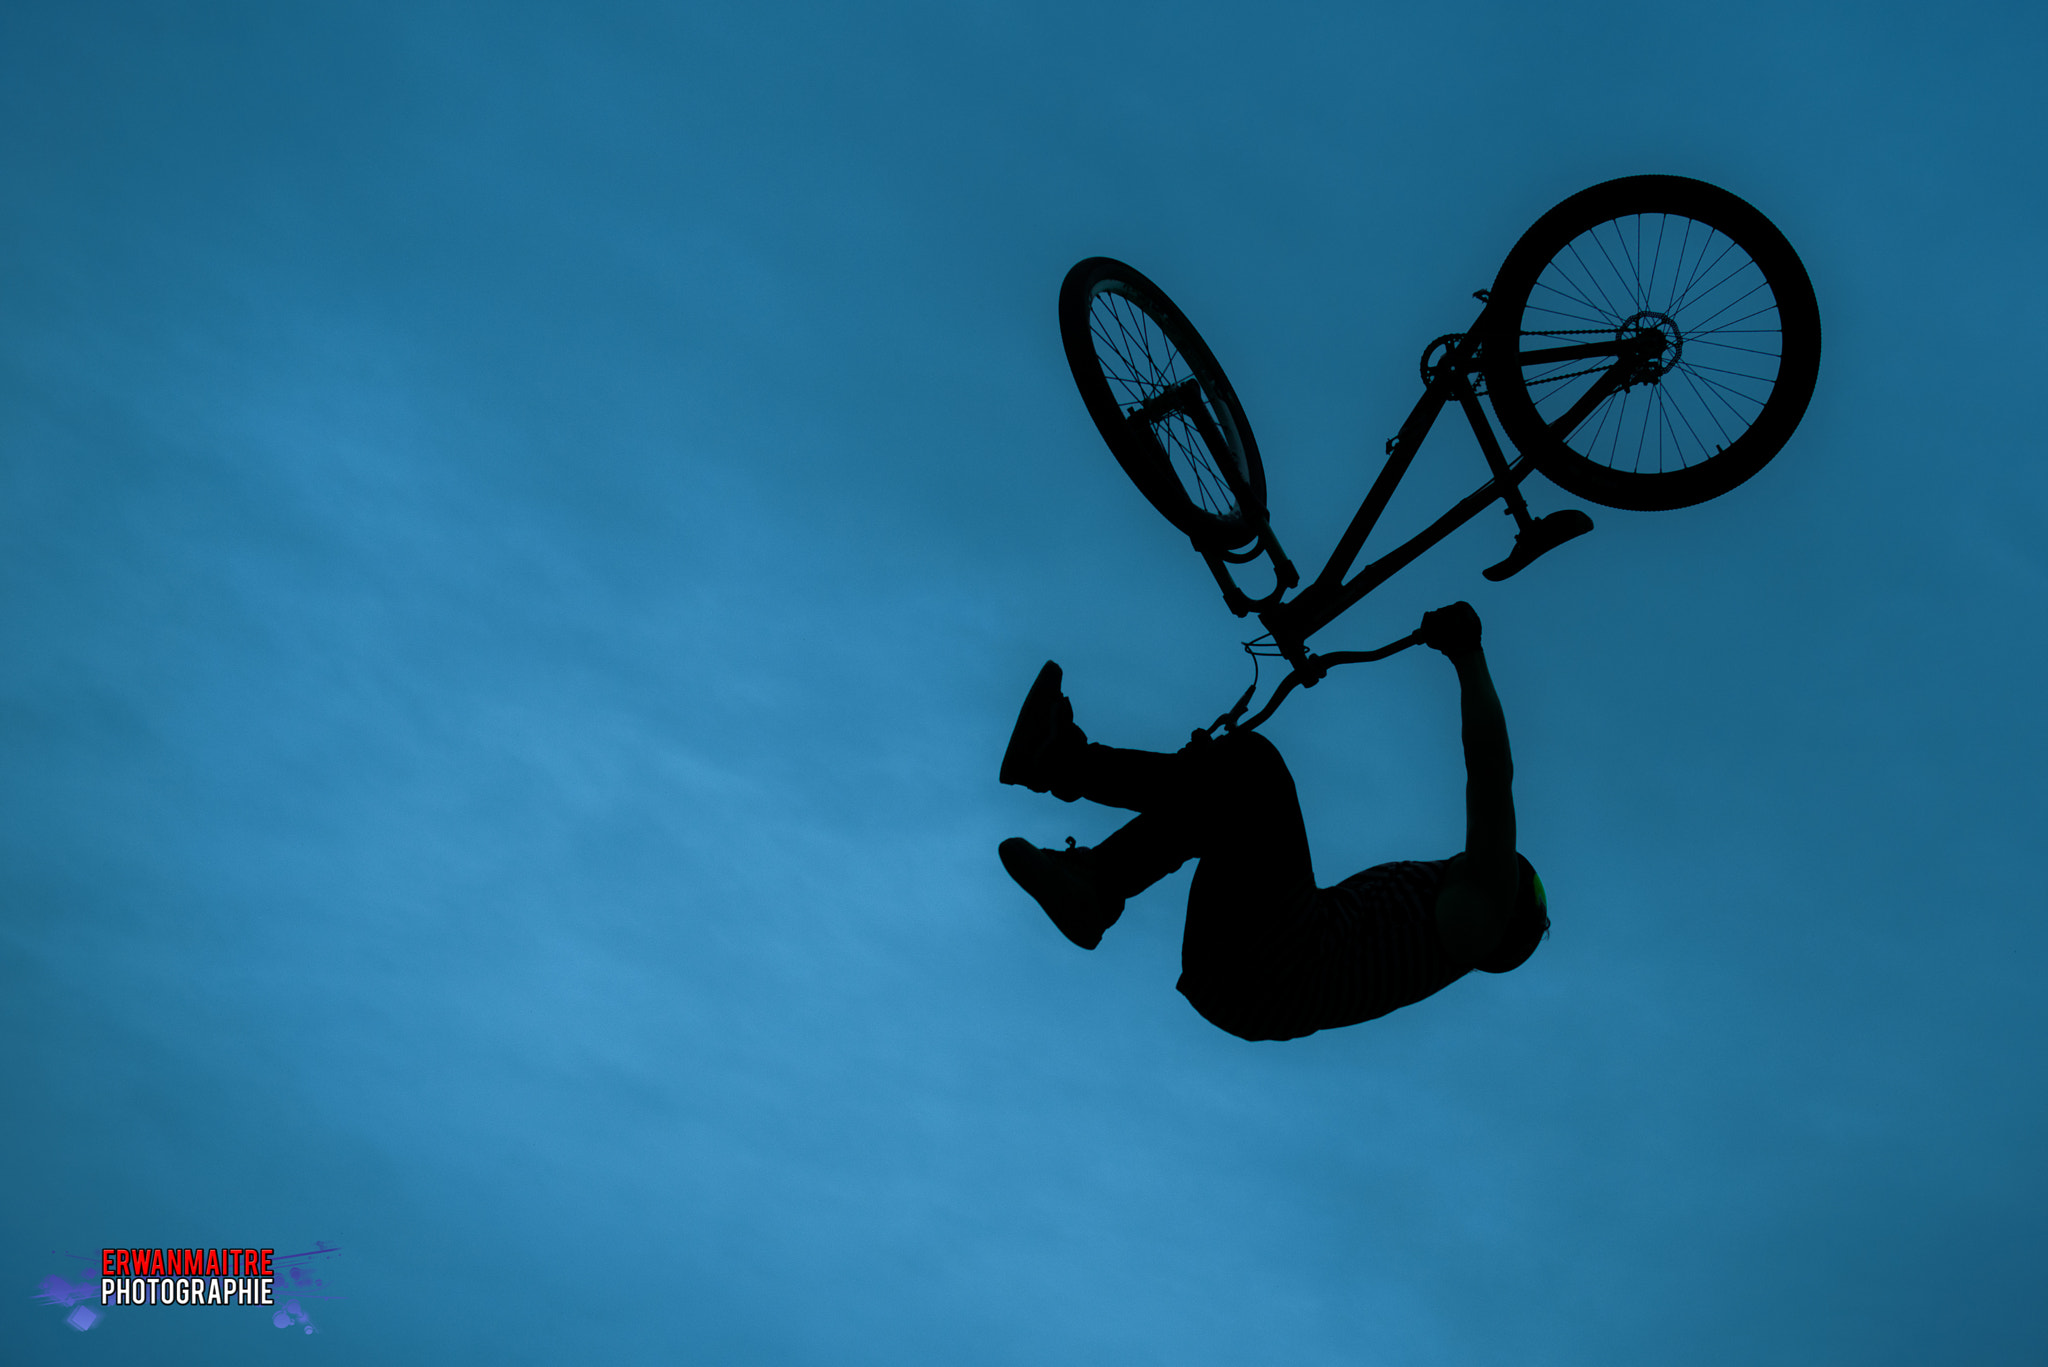 Photograph Fise 2013 - Day 2 by Erwan Maitre on 500px